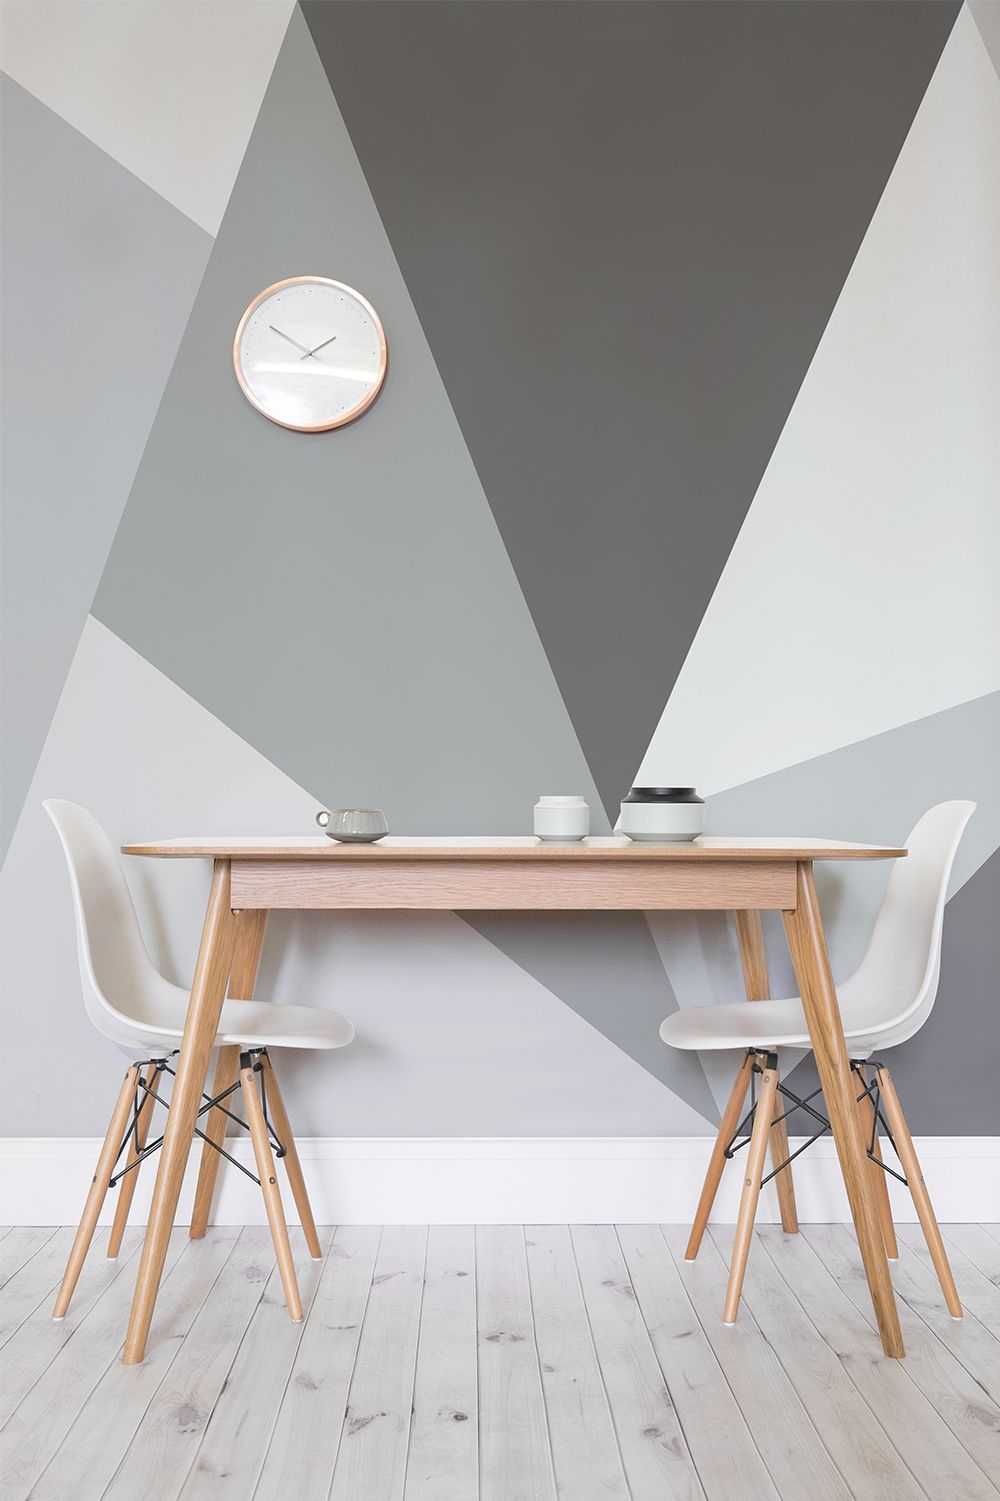 office wallpaper design. This Giant Geometric Wallpaper Design Is Just The Thing. Ideal For Stylish Dining Room Areas And Home Office. Office P